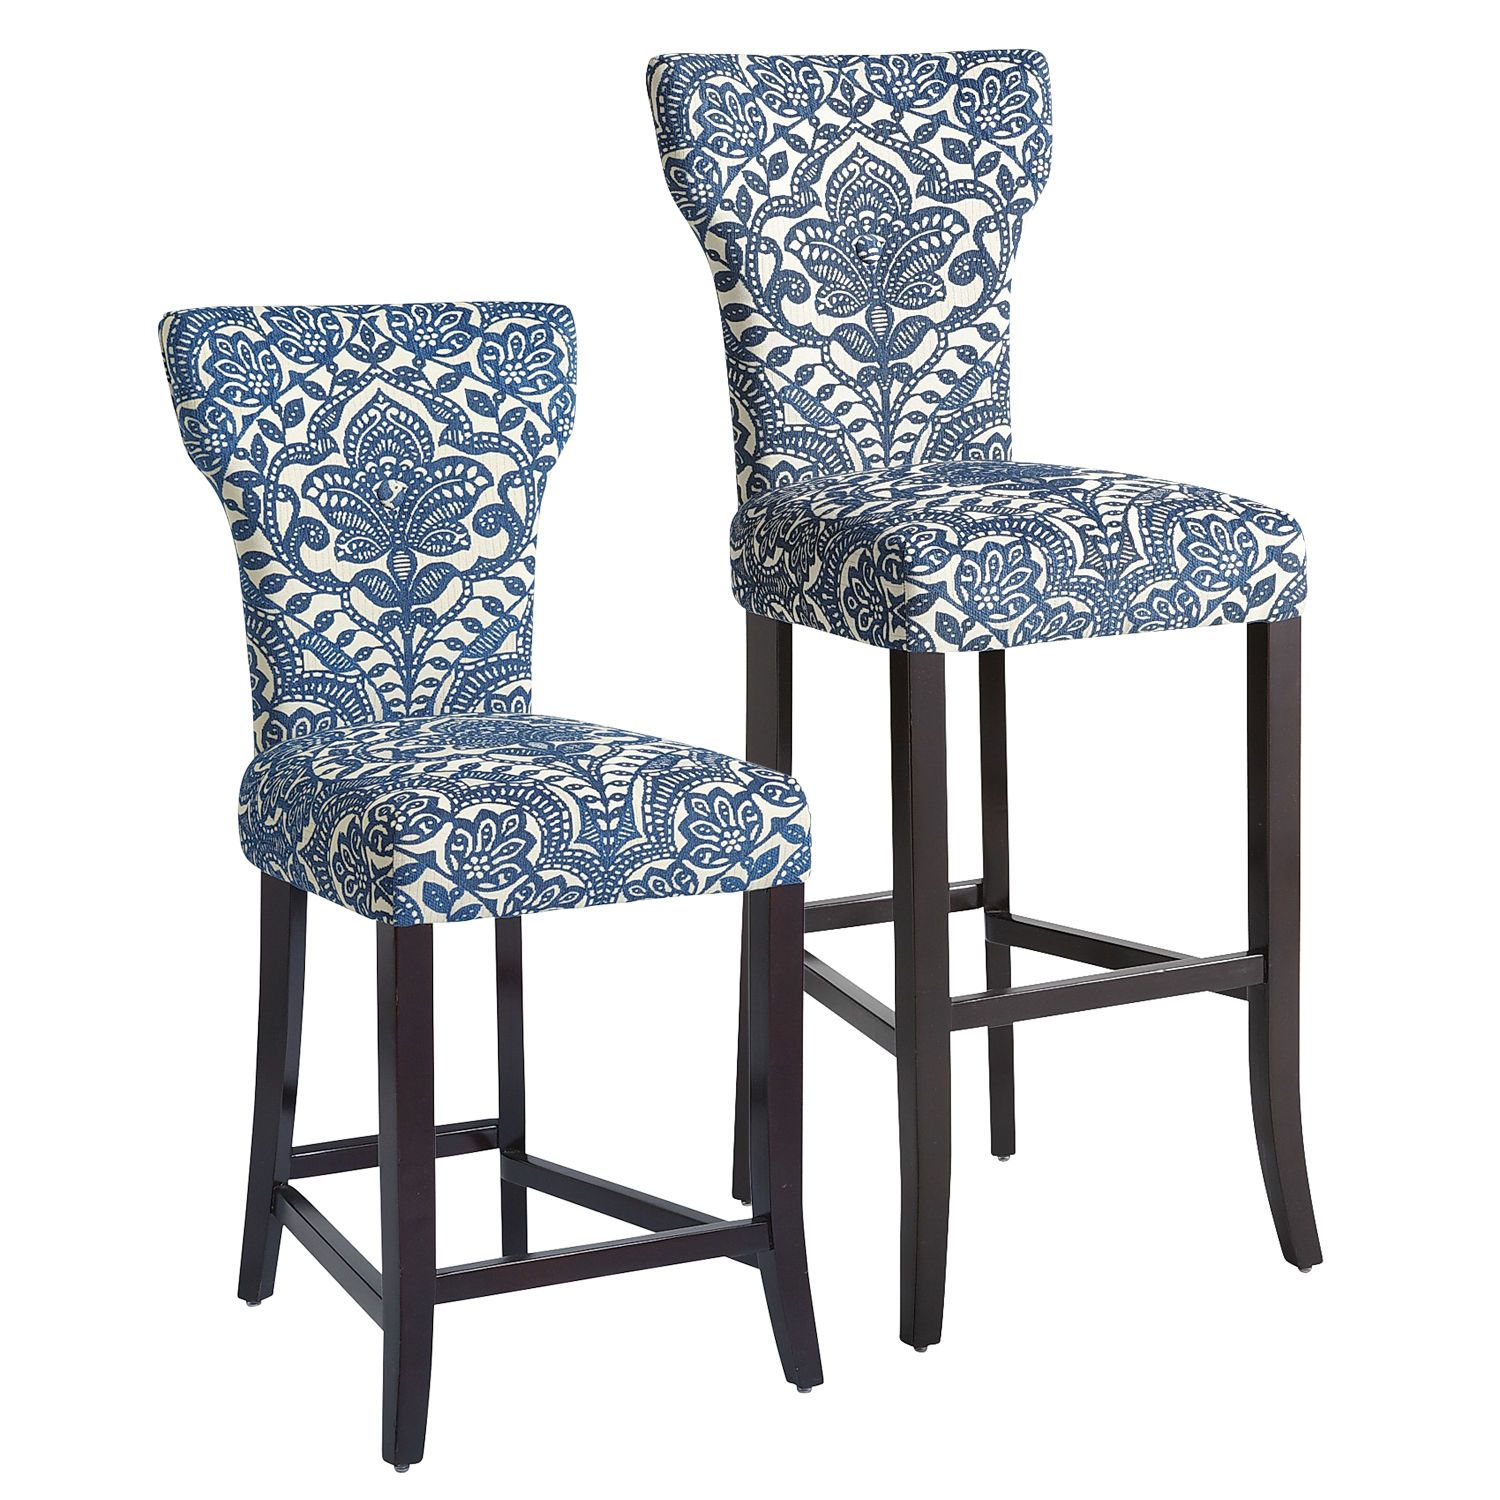 Carmilla Bar Counter Stools Blue Damask Pier 1 Imports